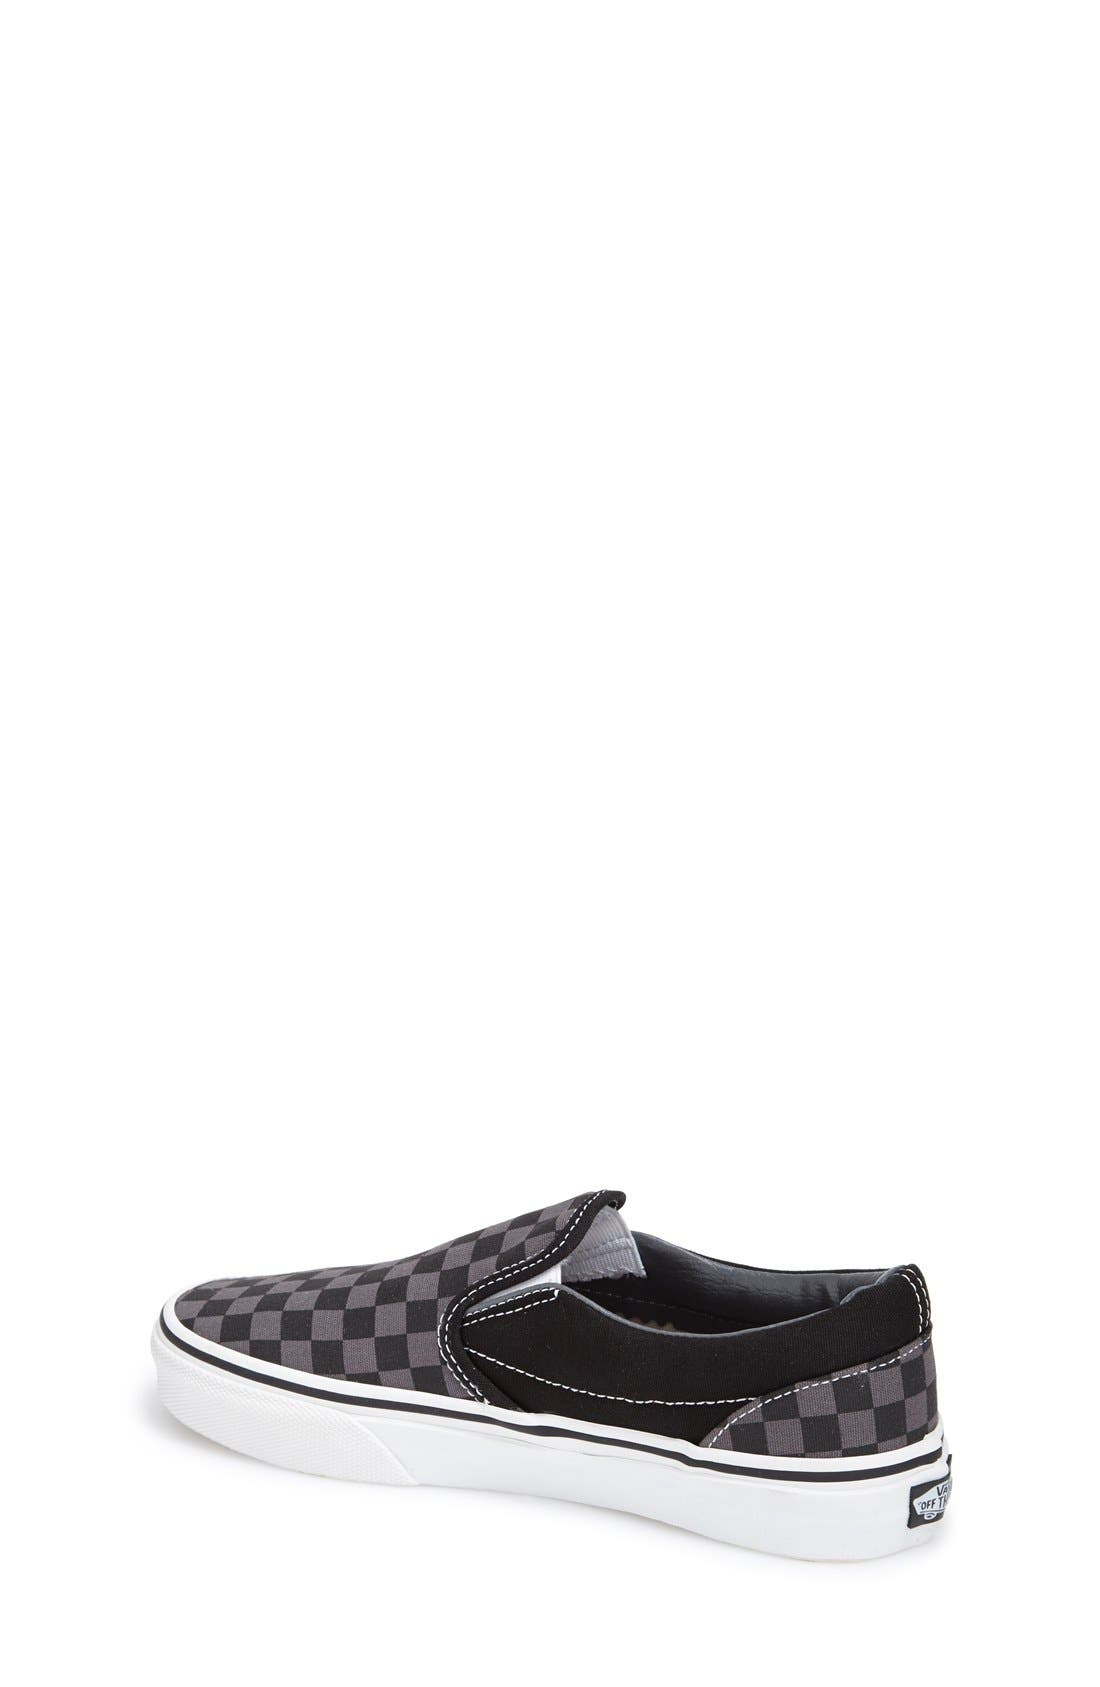 VANS, Classic Checker Slip-On, Alternate thumbnail 2, color, CHECKERBOARD/ BLACK/ PEWTER